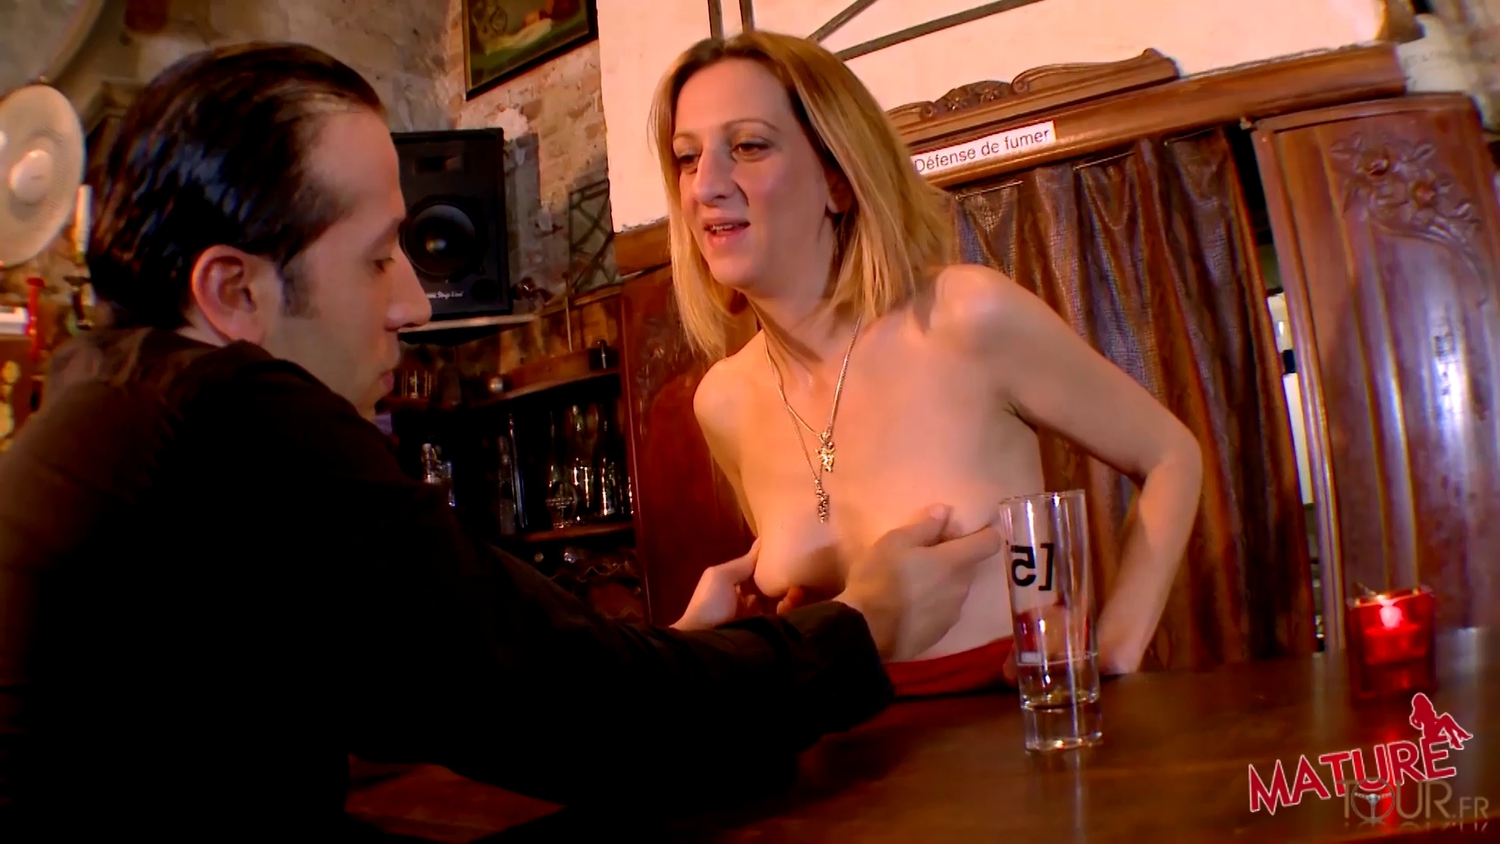 Busty mature bartender gets some action in HD free mrs. jewel porn movies